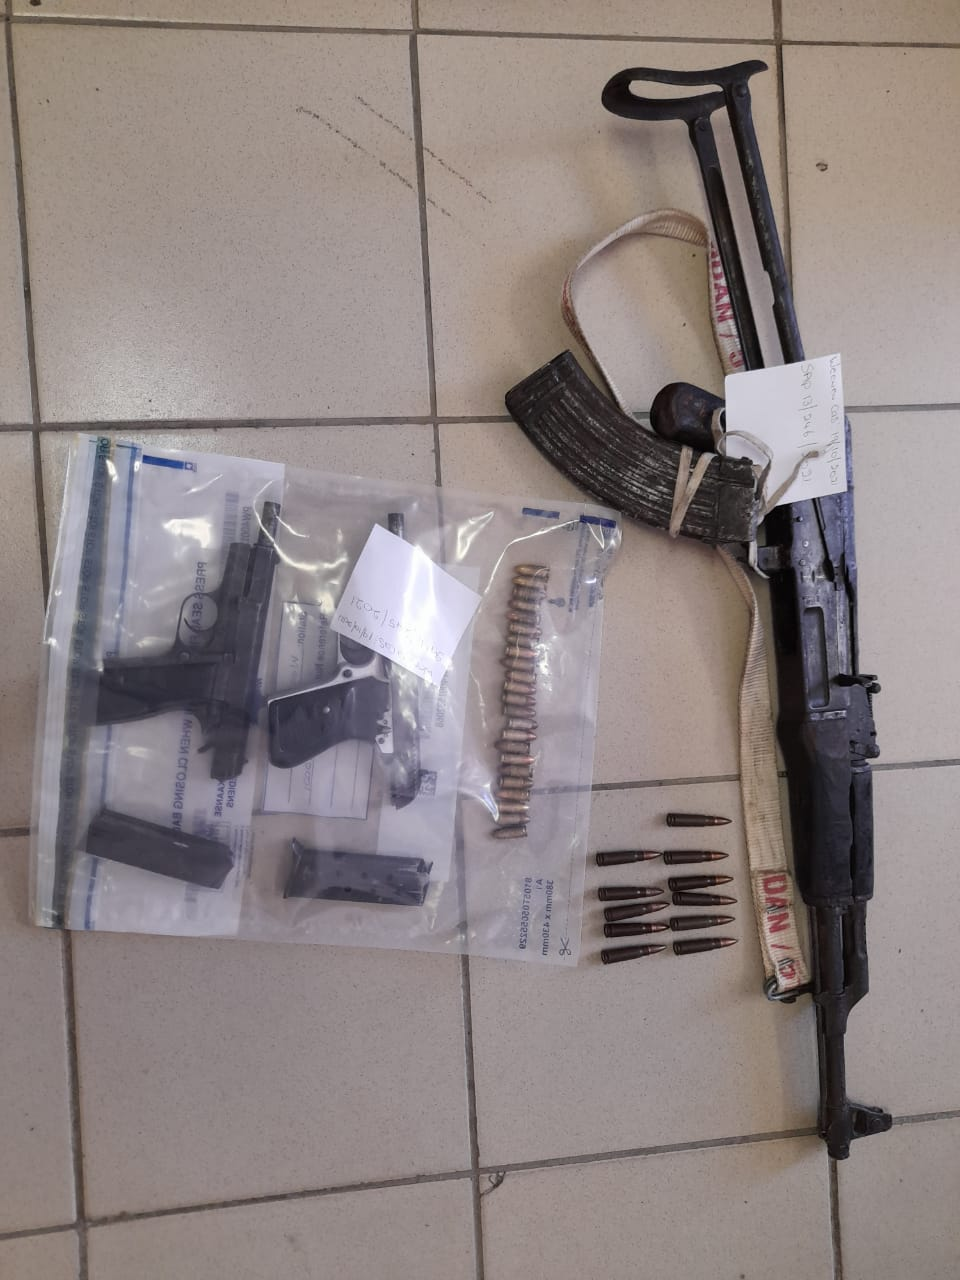 Two men nabbed with firearms after negotiating lobola